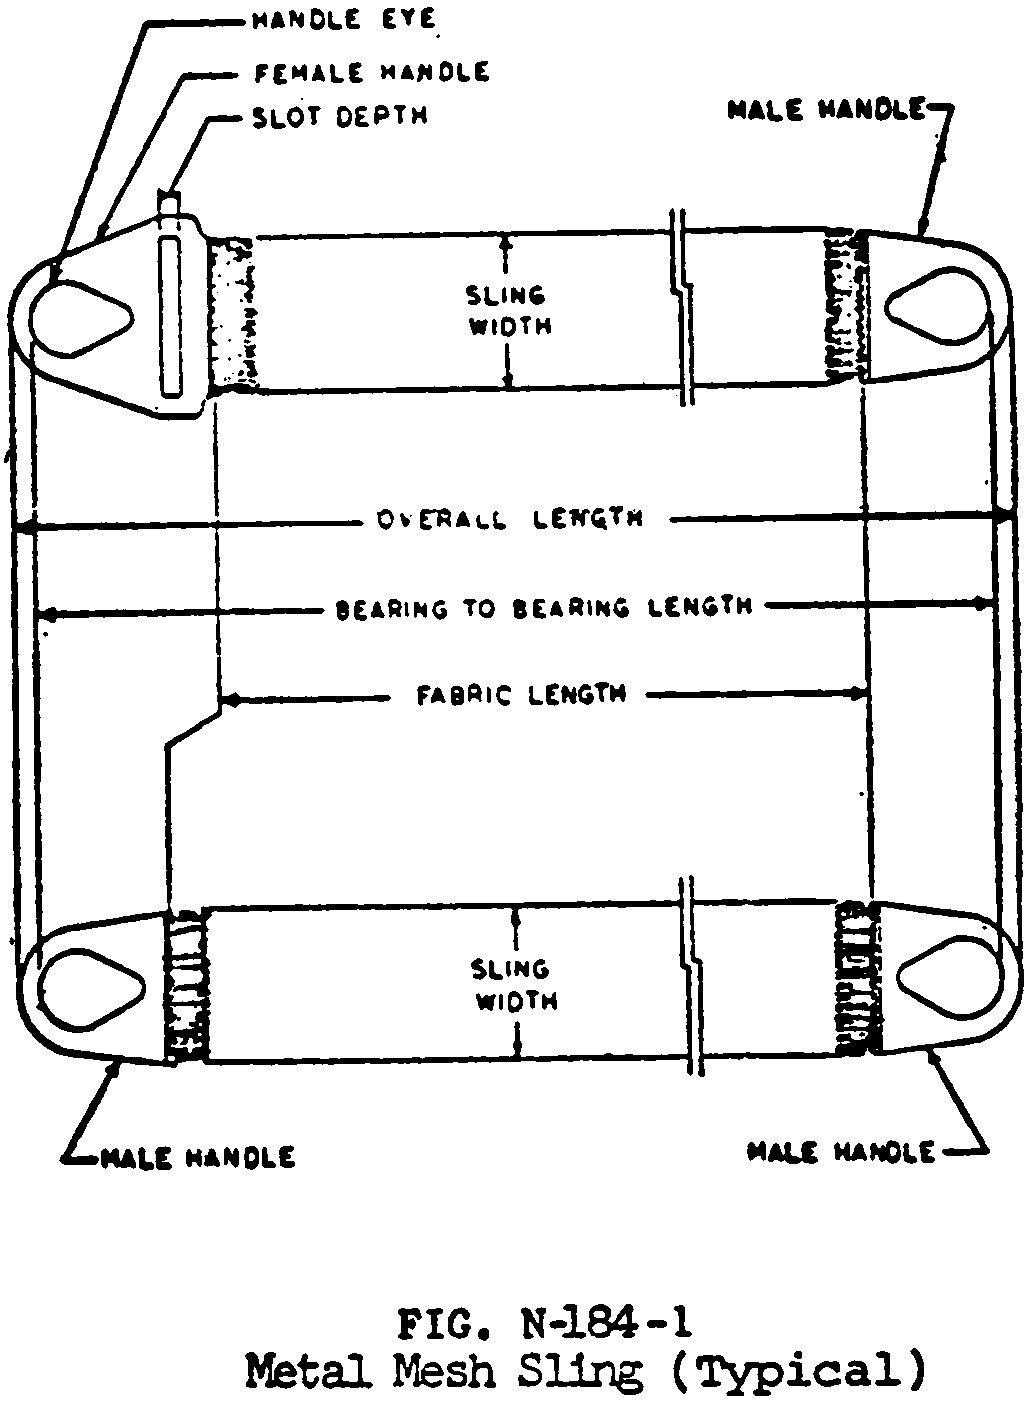 Fig. N-184-1 Metal Mesh Sling (Typical). Diagam howing Two slings with indicators for sling width, overall length, bearing to bearing length, and fabric length. Further indicators point to both male handles, handle eye, female handle, and slot depth